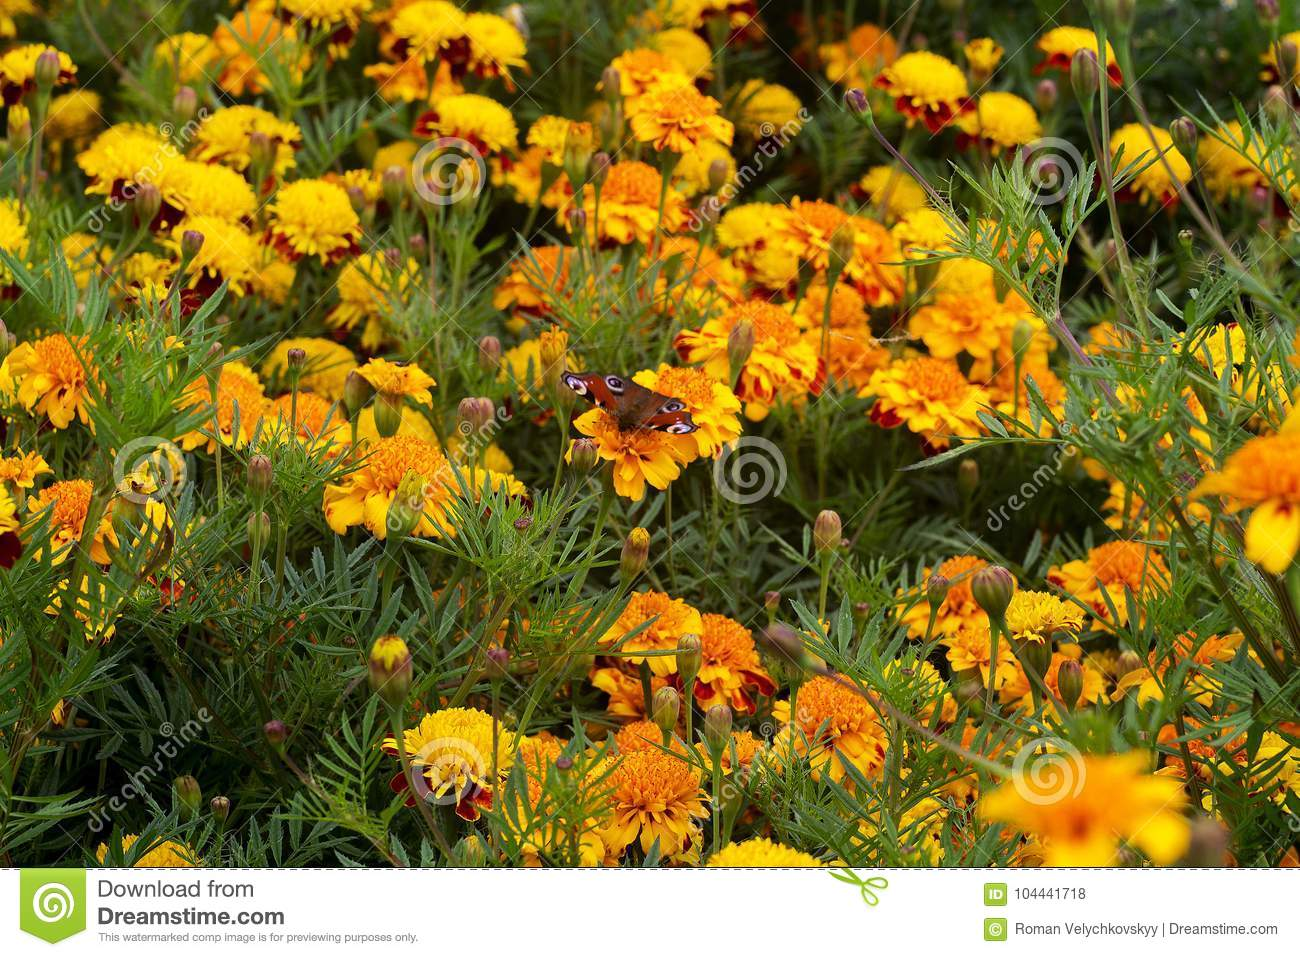 Green meadow with yellow flowers stock photo image of stems download green meadow with yellow flowers stock photo image of stems thickly 104441718 mightylinksfo